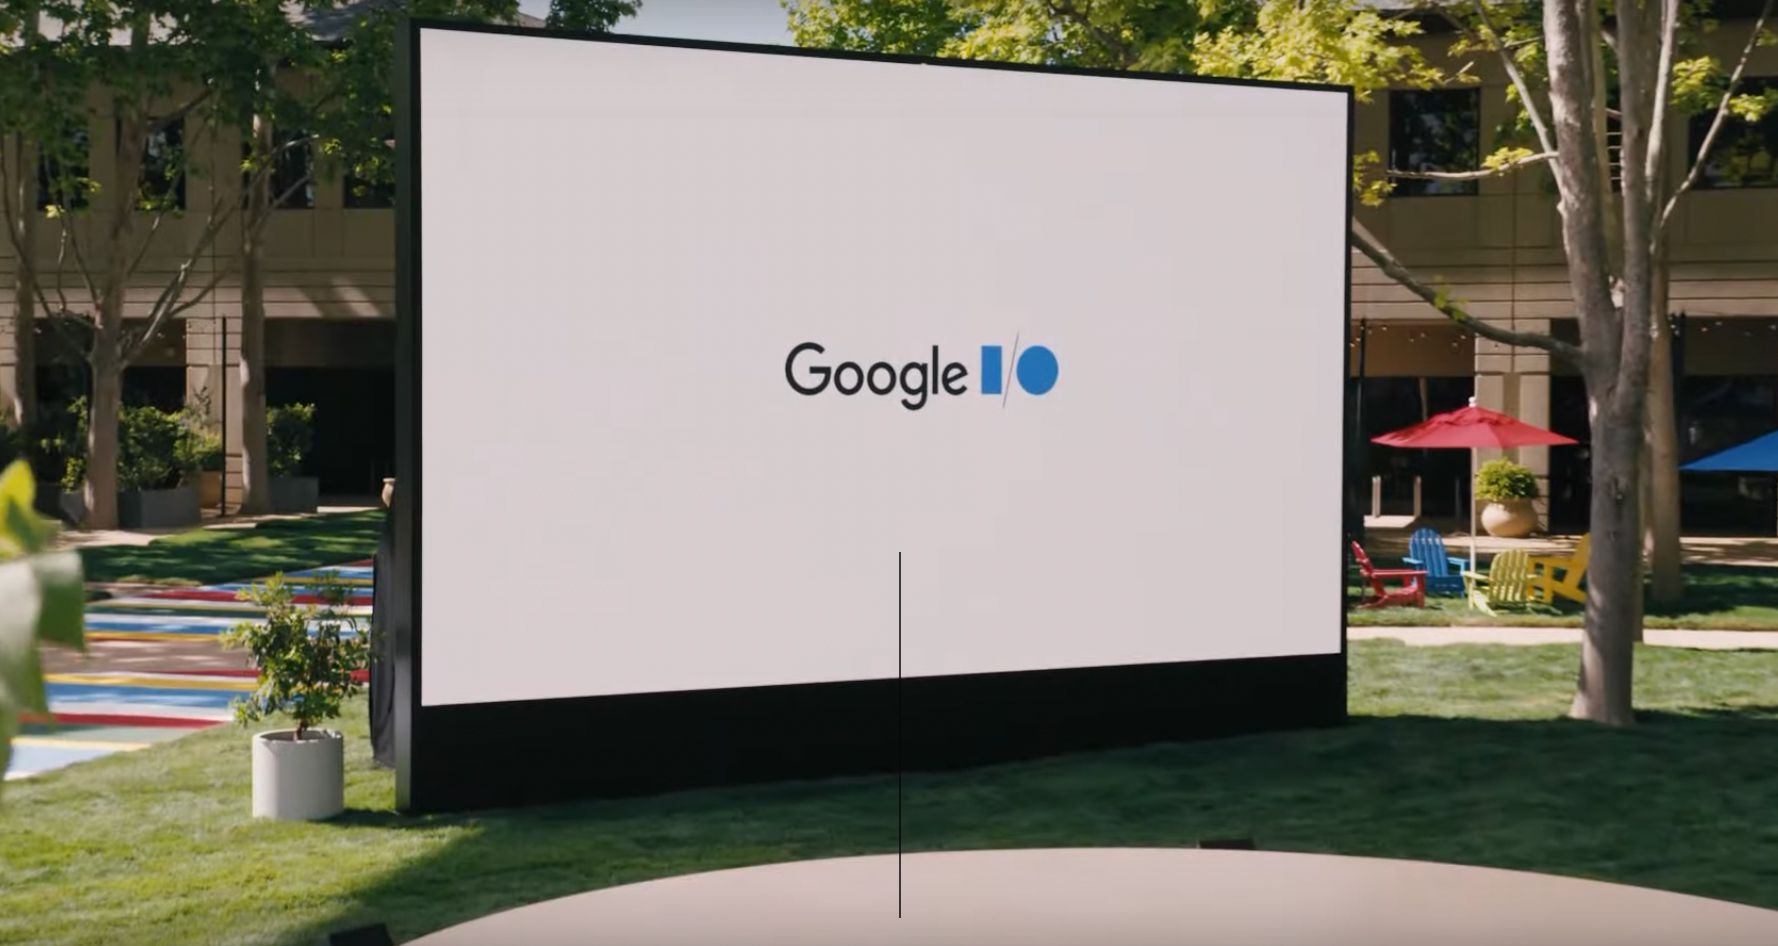 Google I/O opening intro logo on projector screen